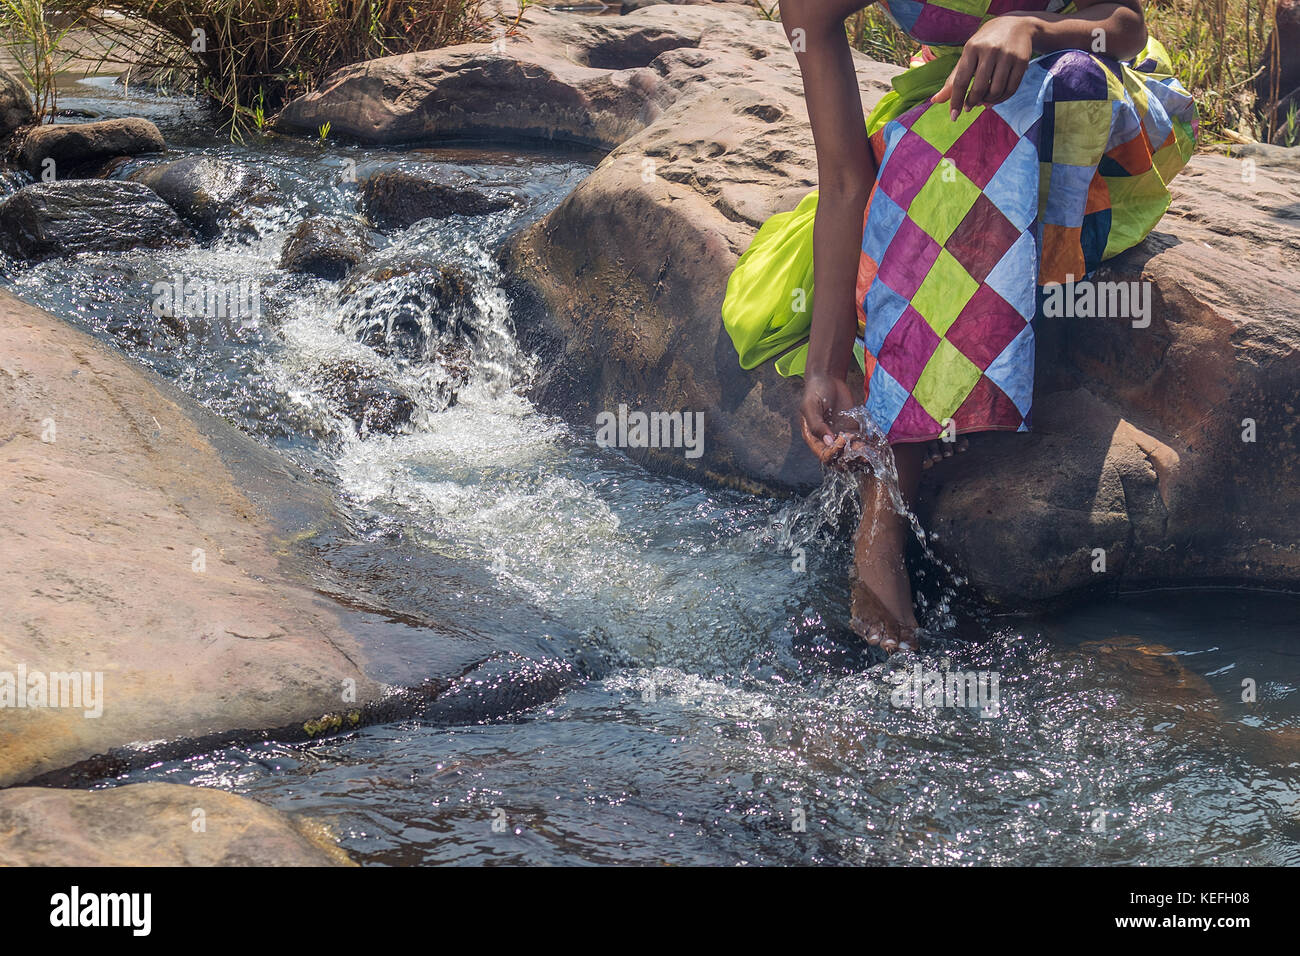 Woman in African outfit on the verge of fluent river. Interacting with water. Angola. Stock Photo